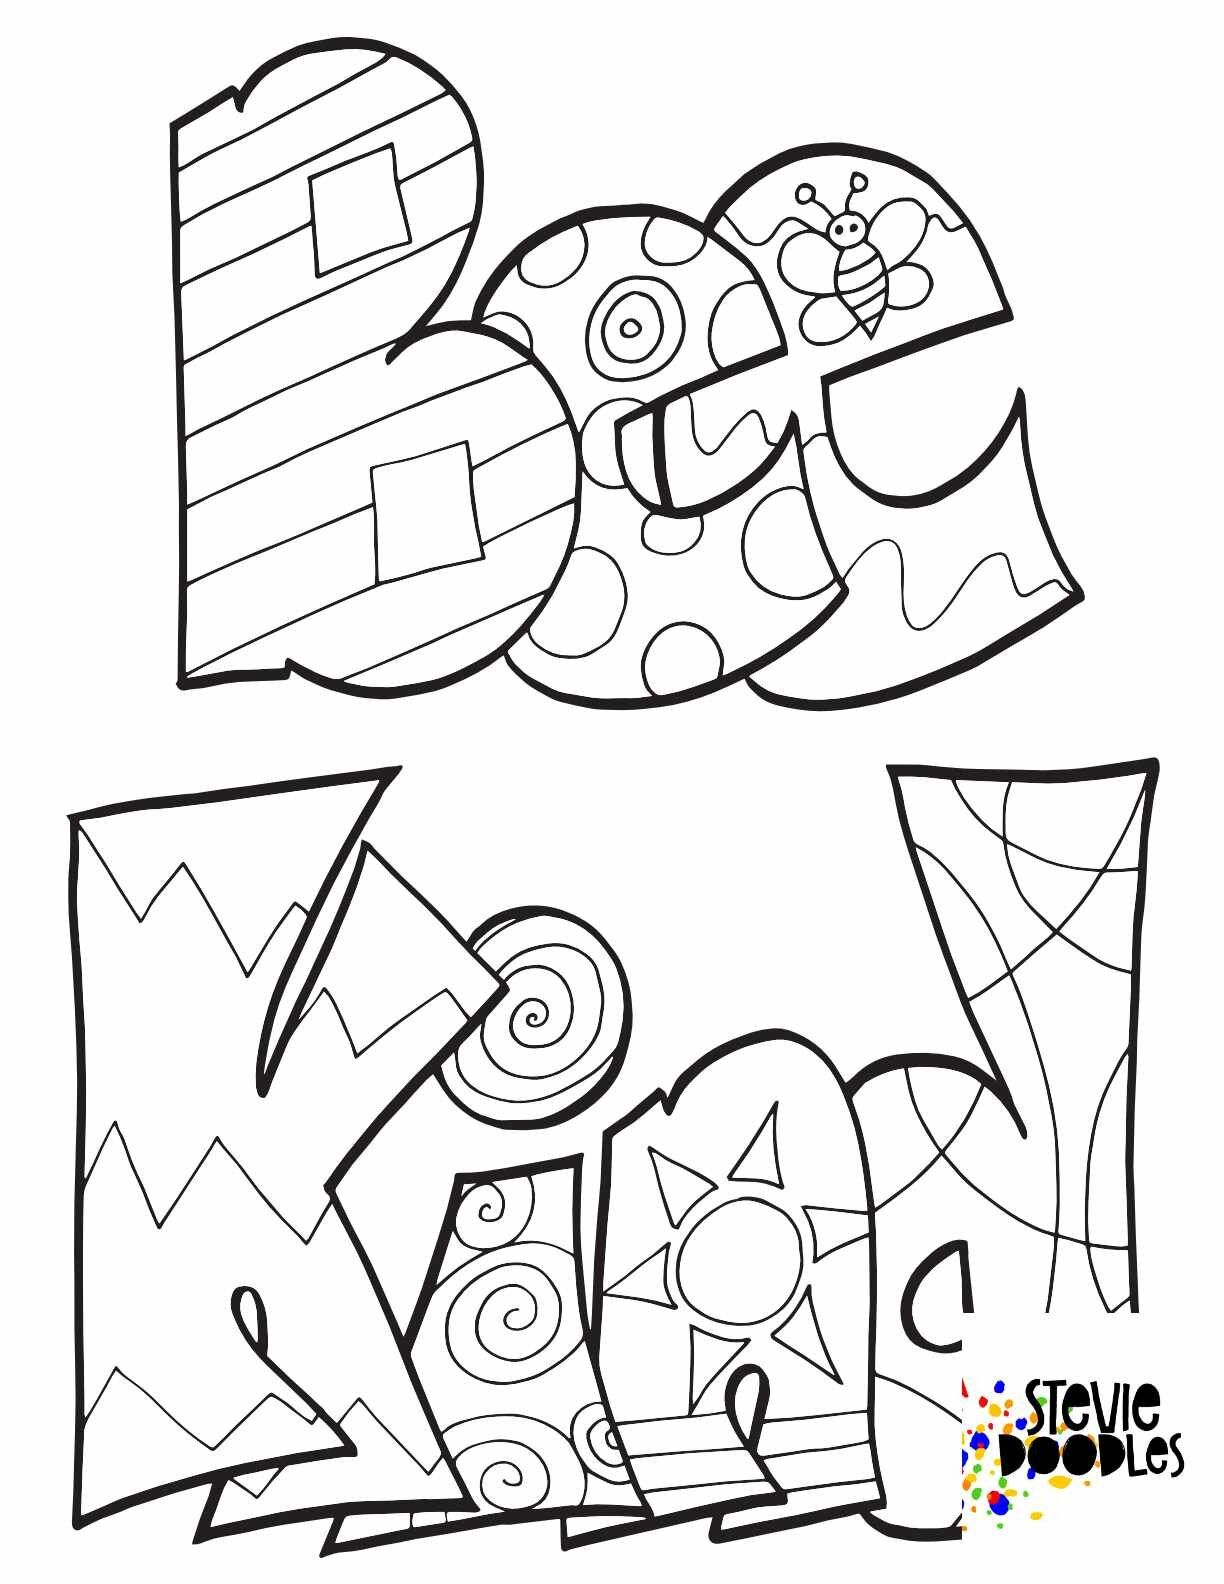 Free Coloring Pages Stevie Doodles Coloring Pages Crayola Coloring Pages Cool Coloring Pages